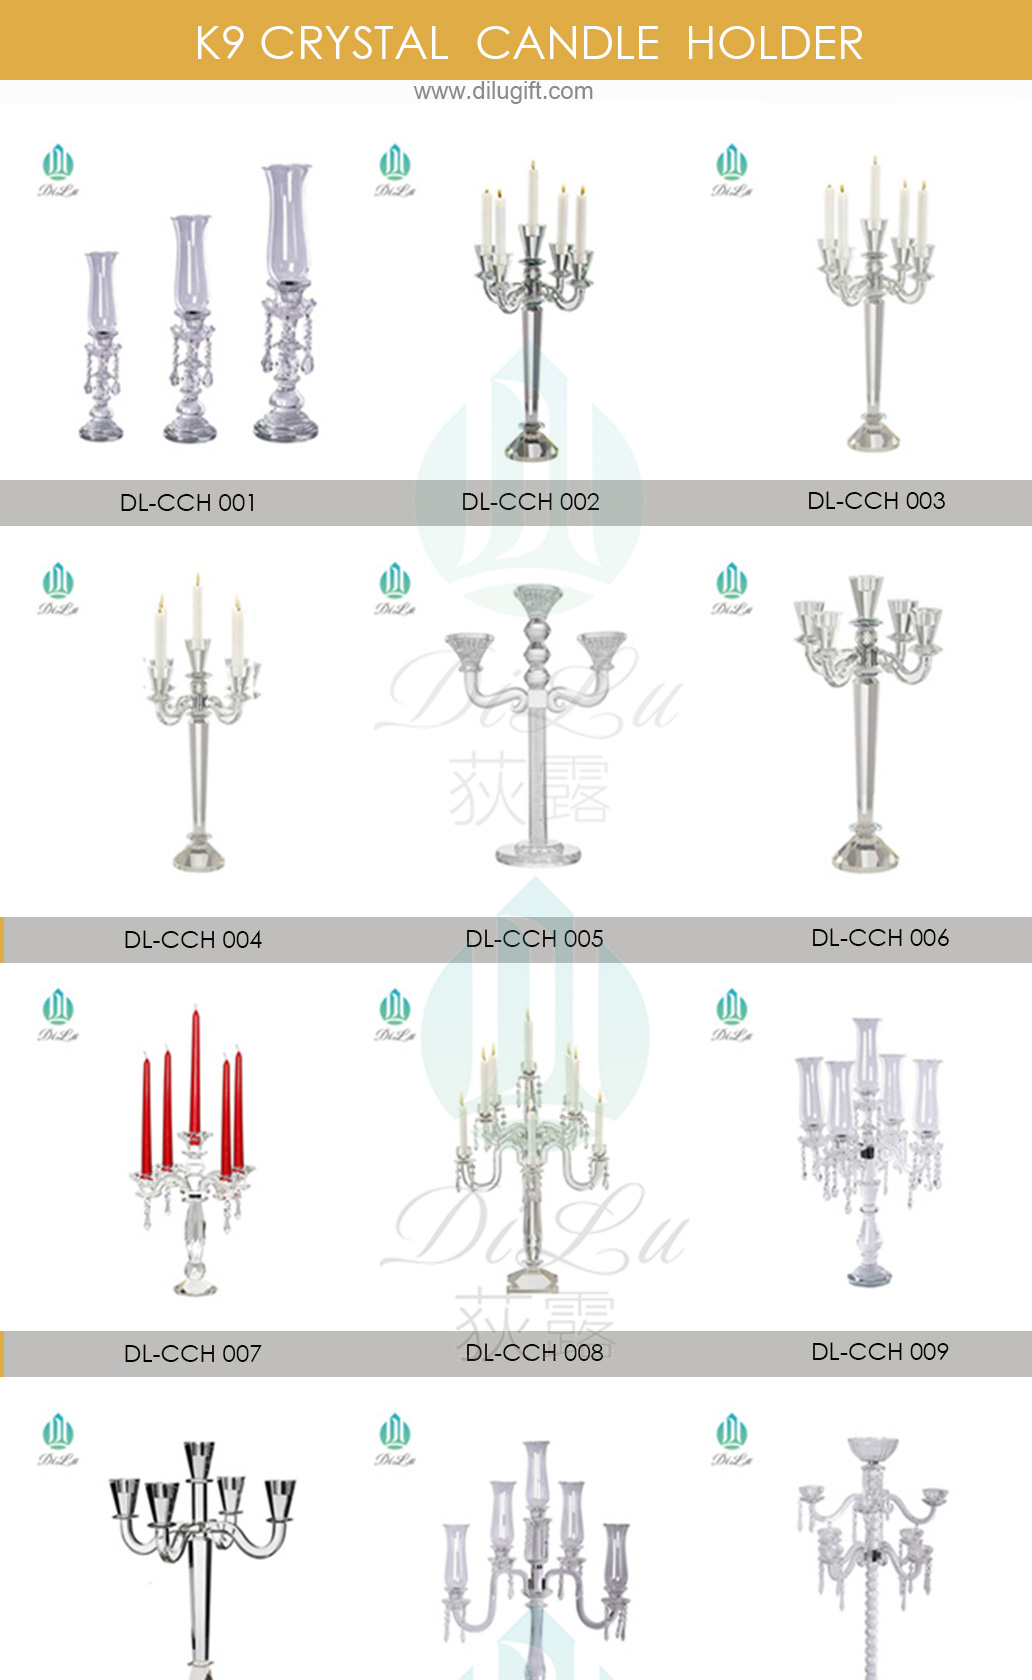 DL-21ZT011 Wholesale single tall crystal glass candle holders for weddings decorative